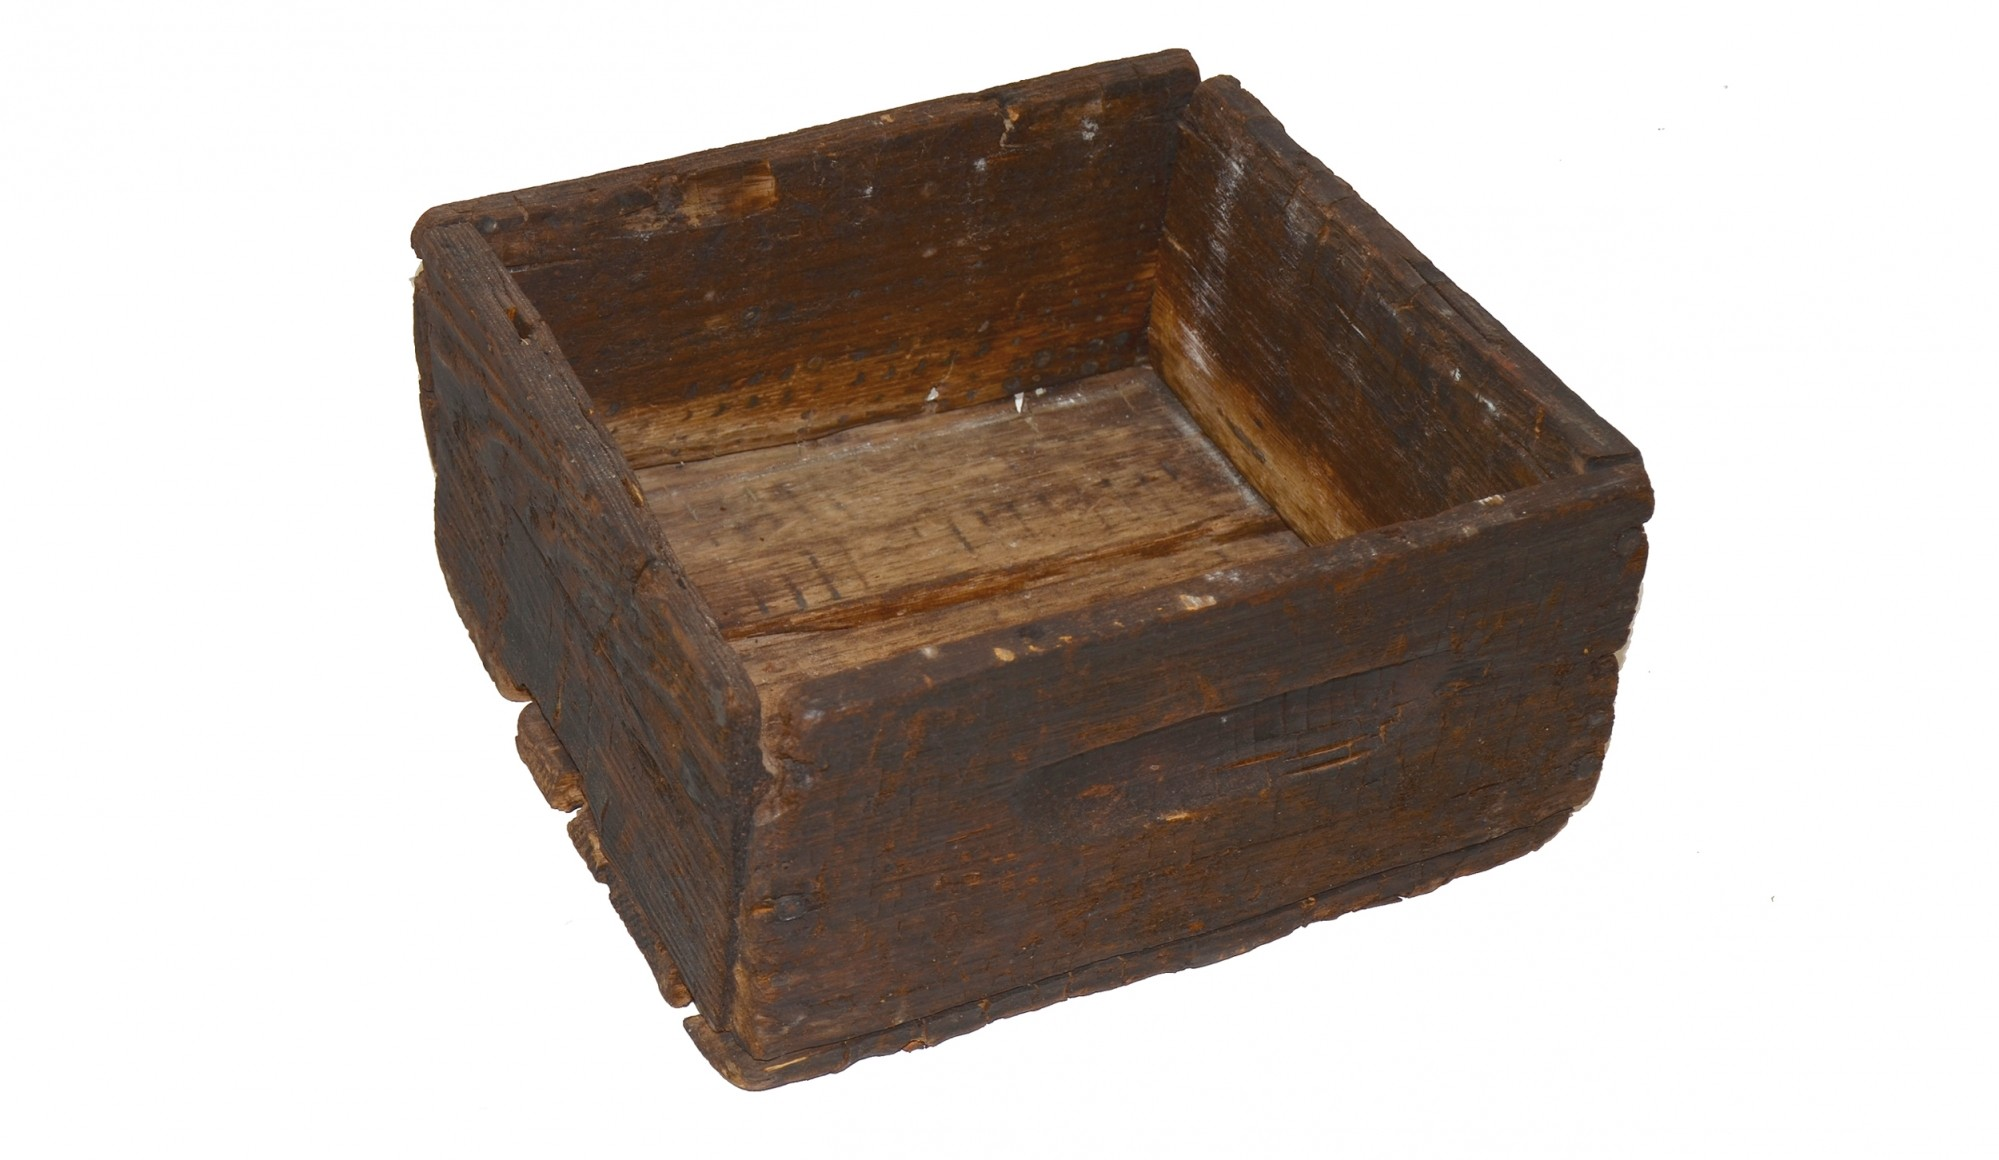 AMMUNITION CRATE FOR BRASS CASED GALLAGHER CARTRIDGES PULLED FROM THE JAMES RIVER, WITH SOME CARTRIDGES FOUND WITH THE CRATE